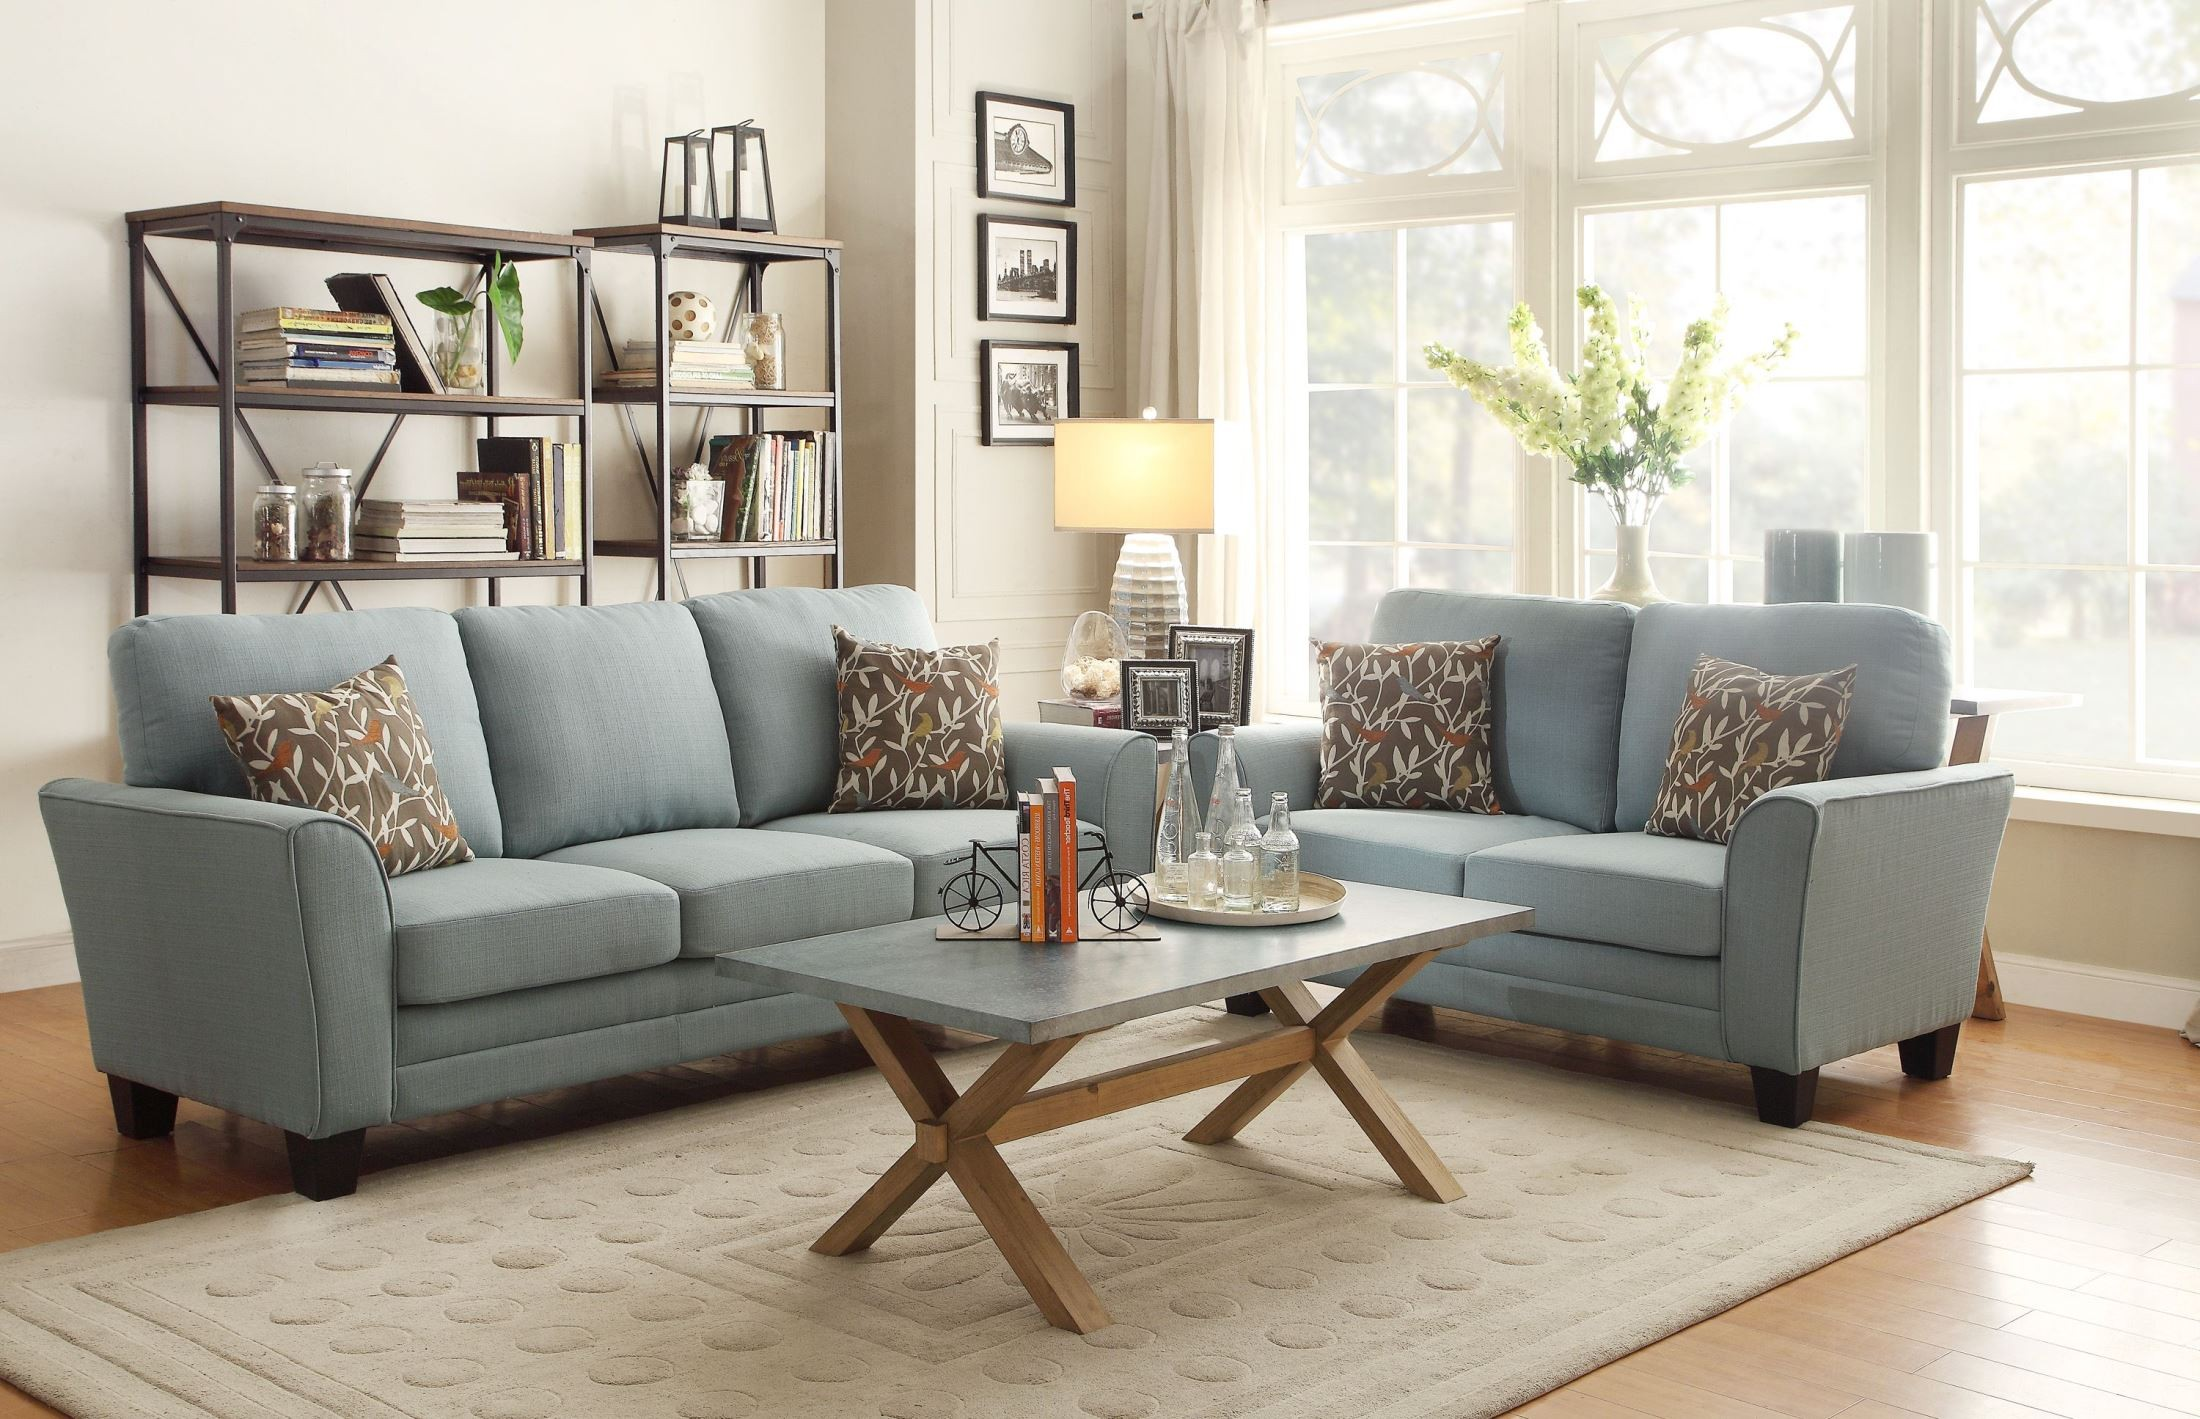 adair teal living room set from homelegance 8413tl 3 coleman furniture